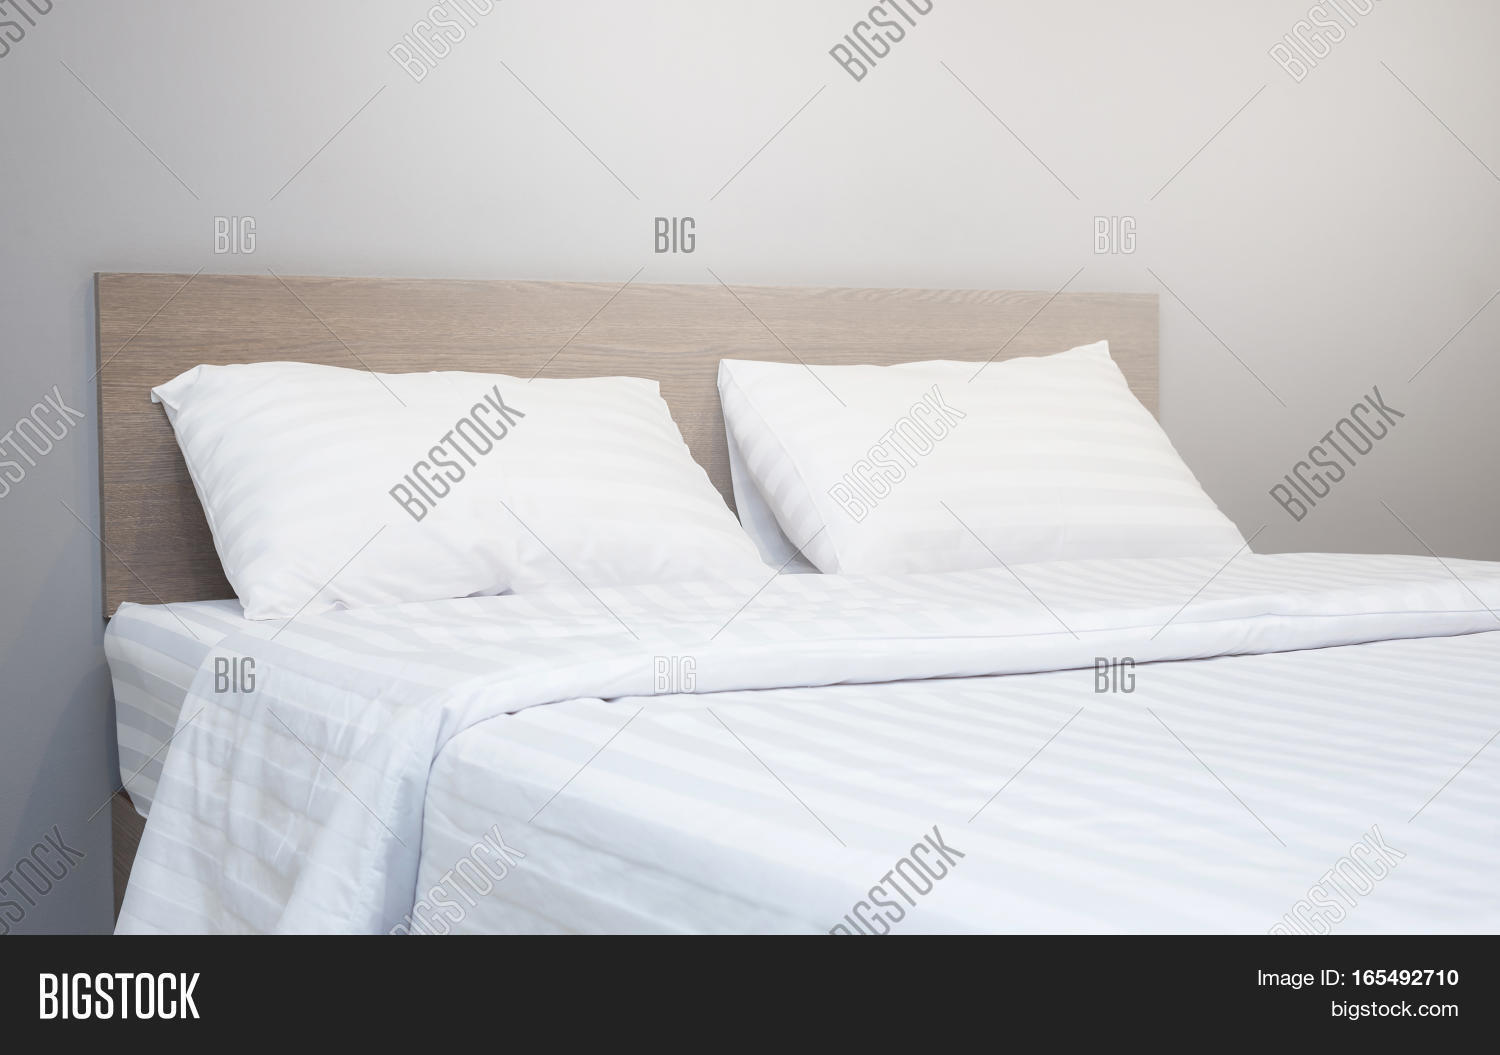 White Bedding Pillow Image & Photo (Free Trial) | Bigstock